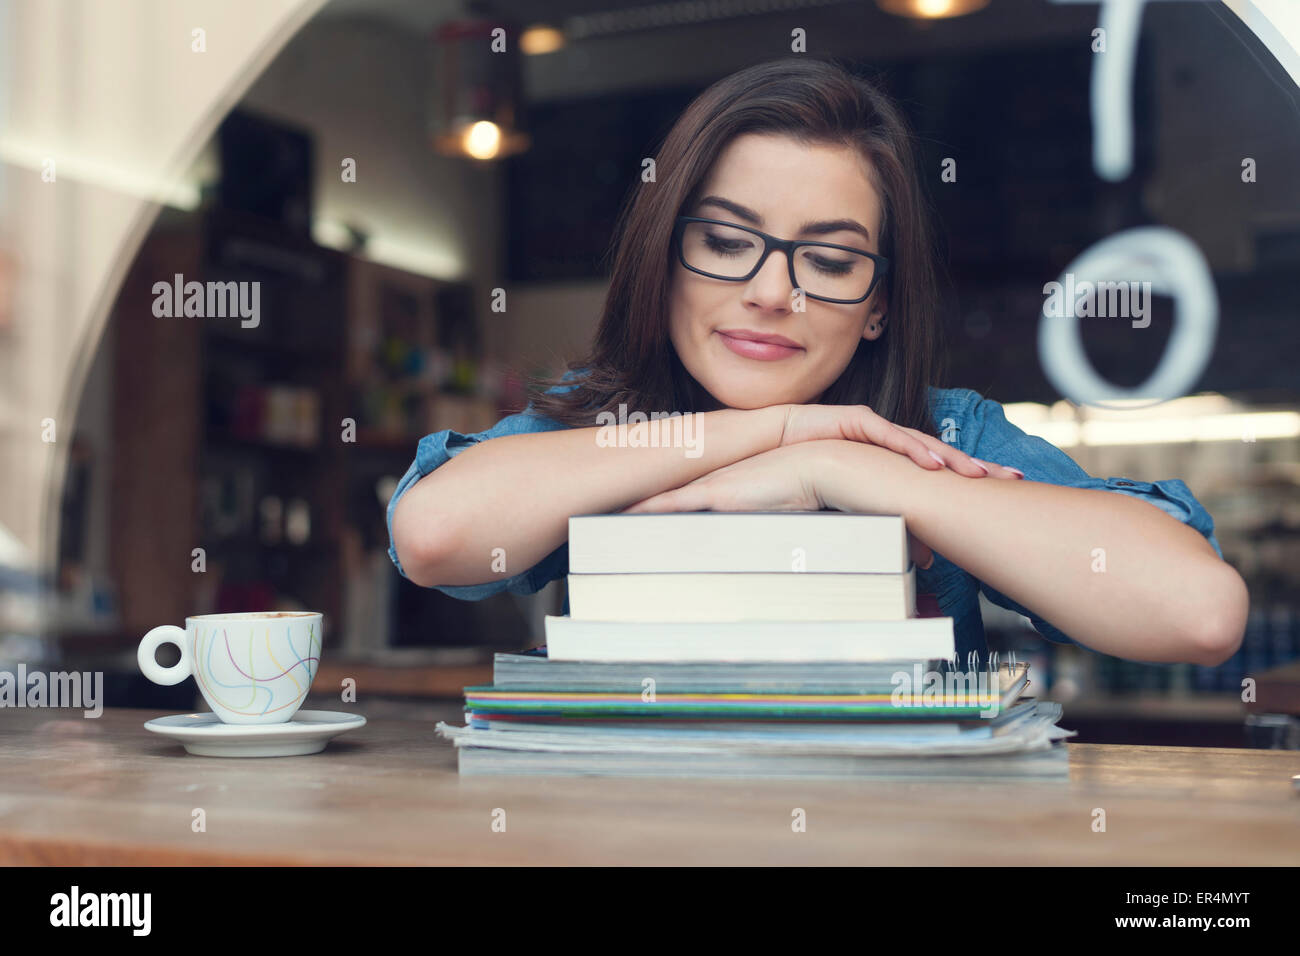 Beautiful and smiling female student at cafe. Krakow, Poland - Stock Image